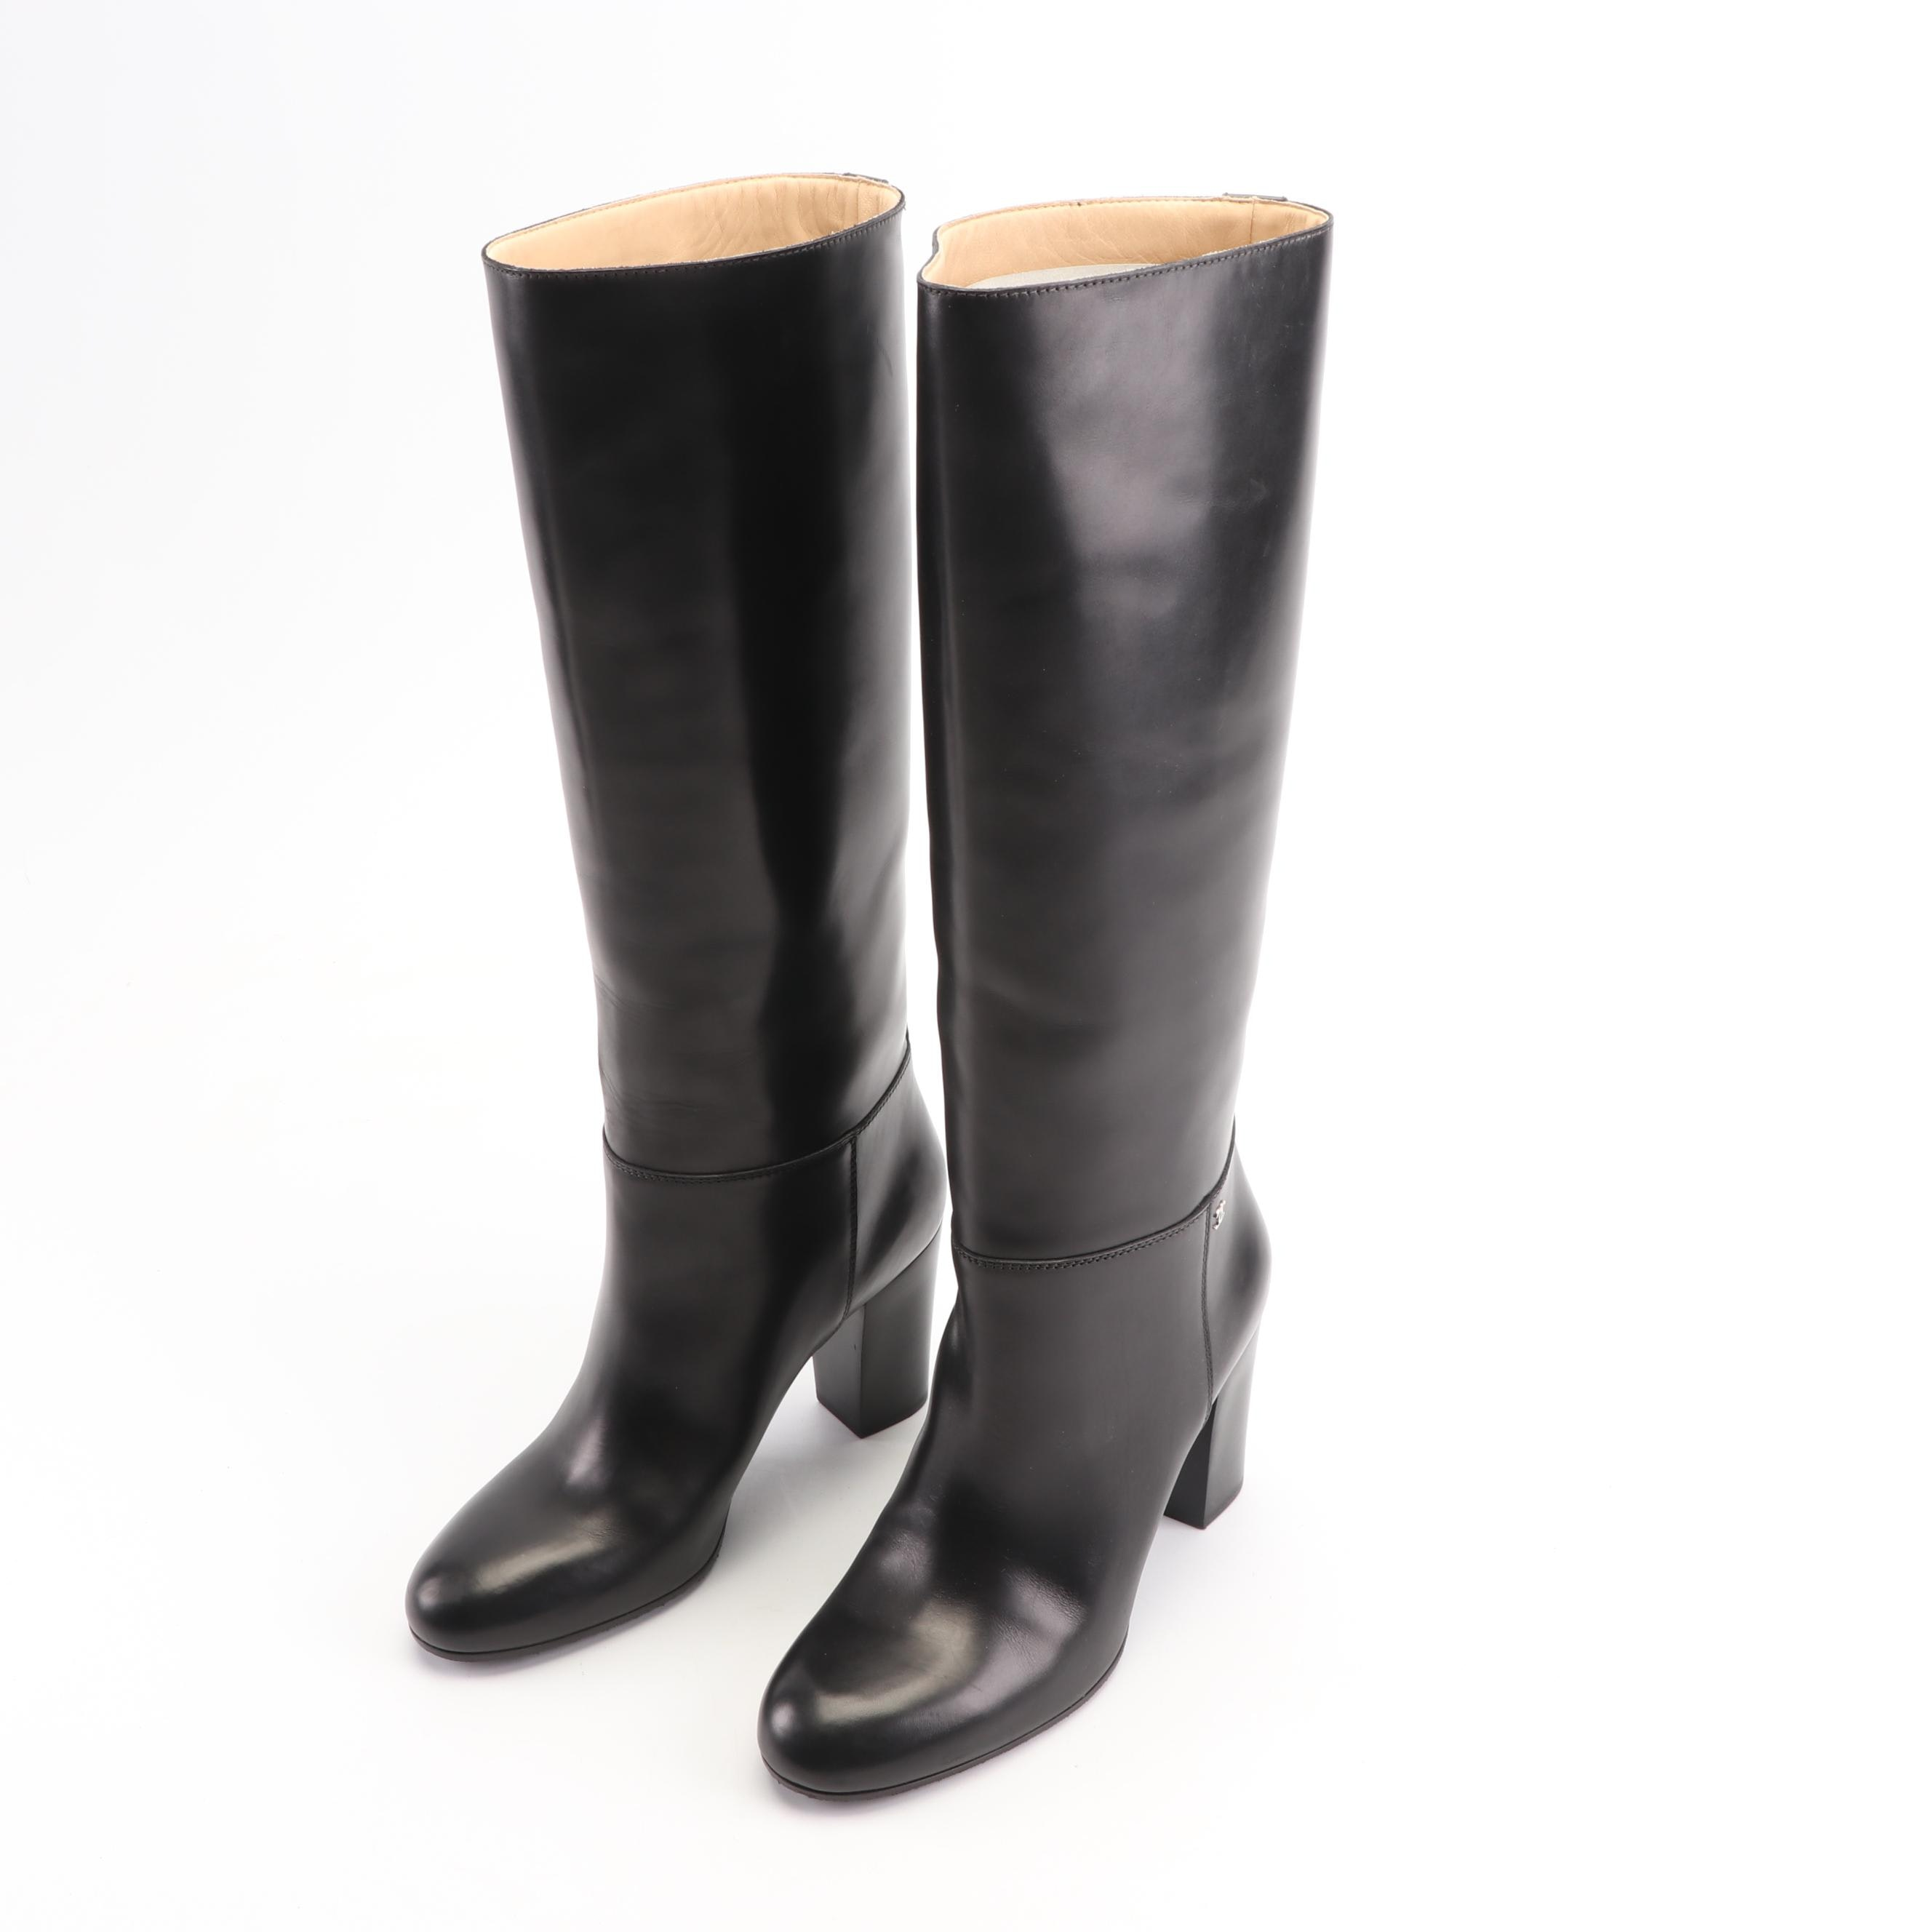 Women's Chanel Tall Black Leather Boots, Made in Italy